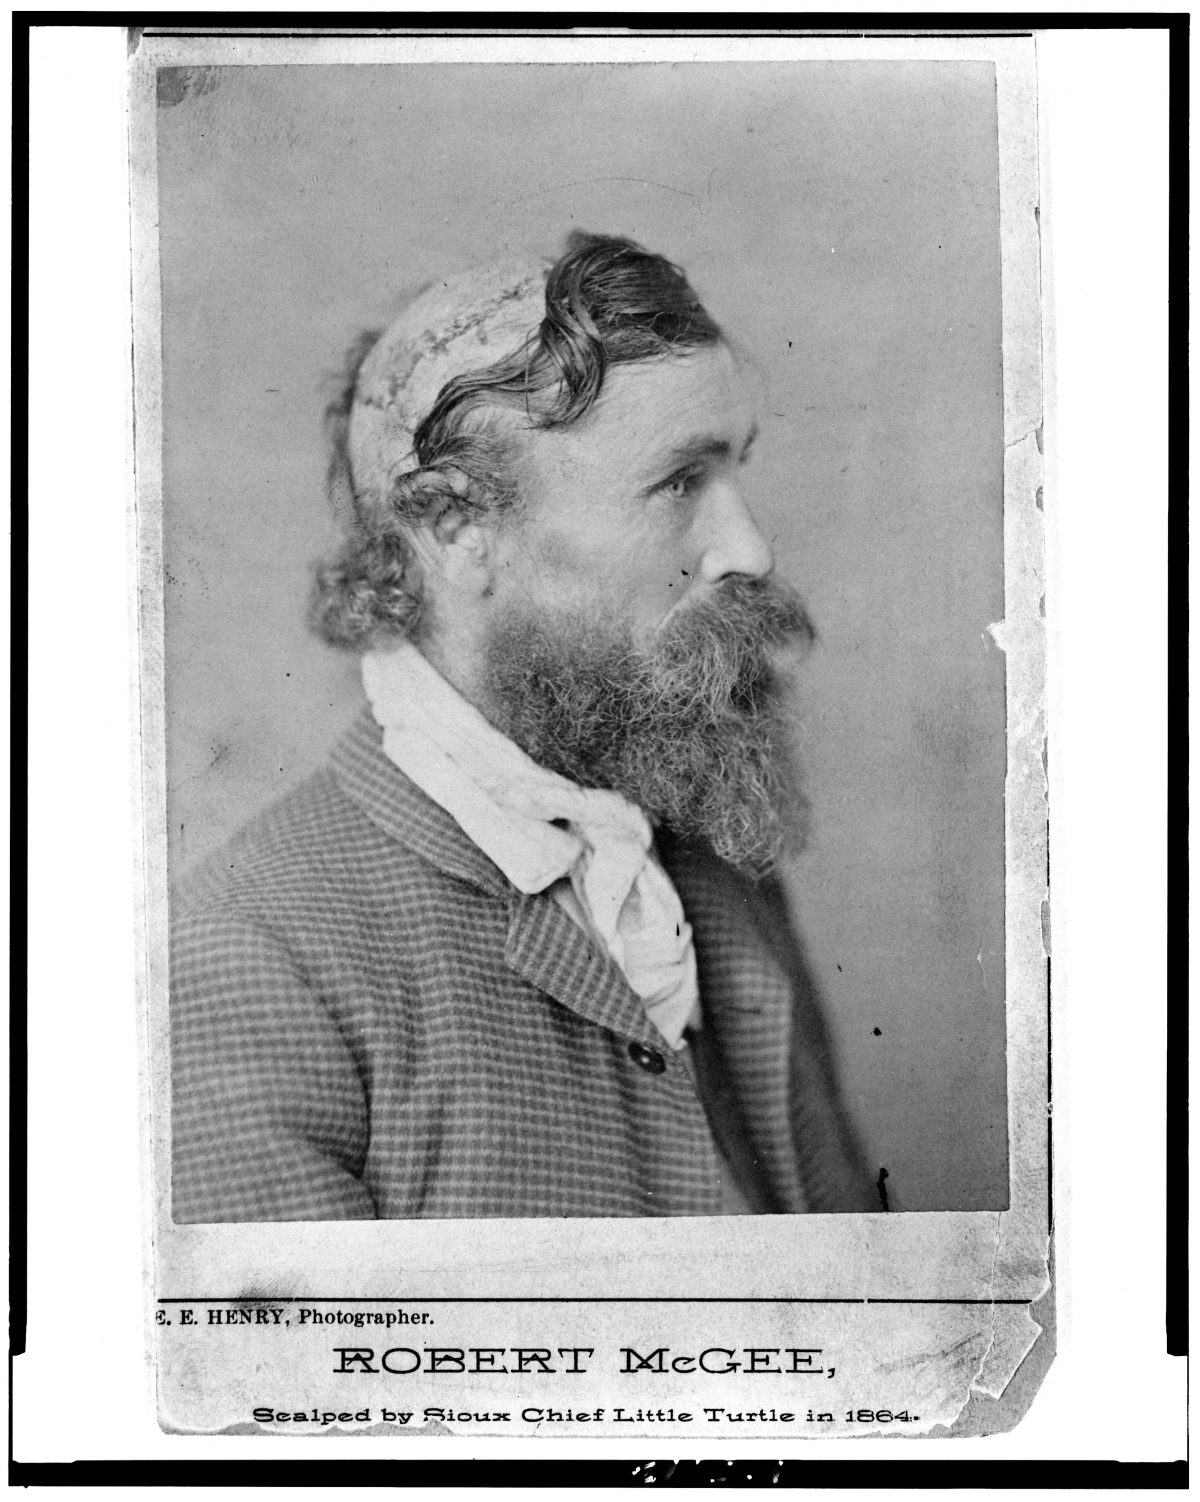 Robert McGee, scalped by Sioux Chief Little Turtle in 1864